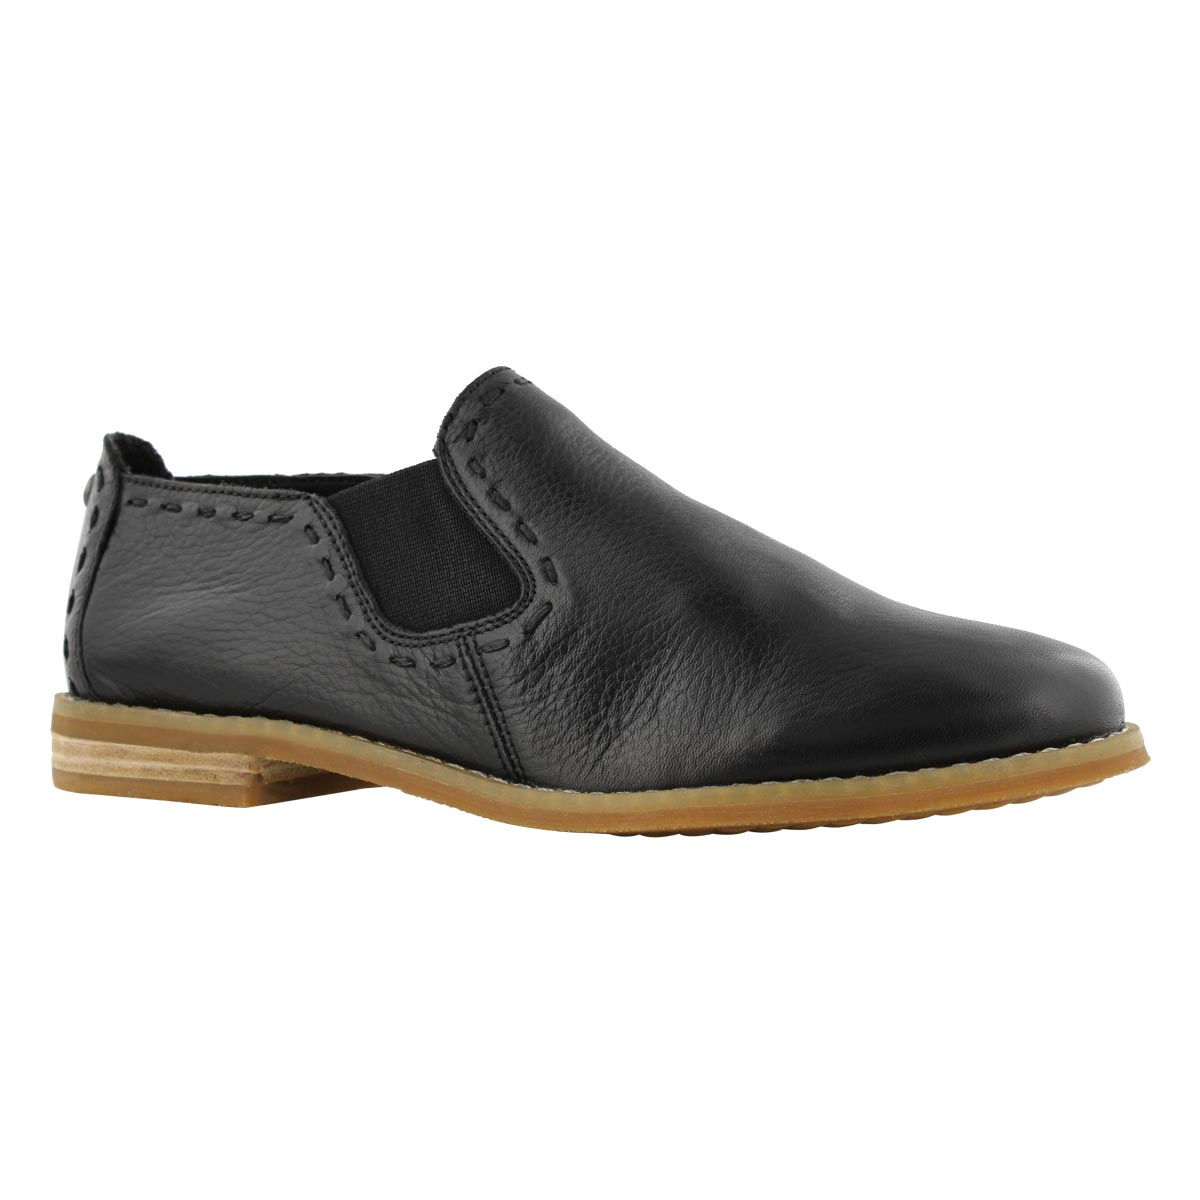 Lds Chardon black casual slip on